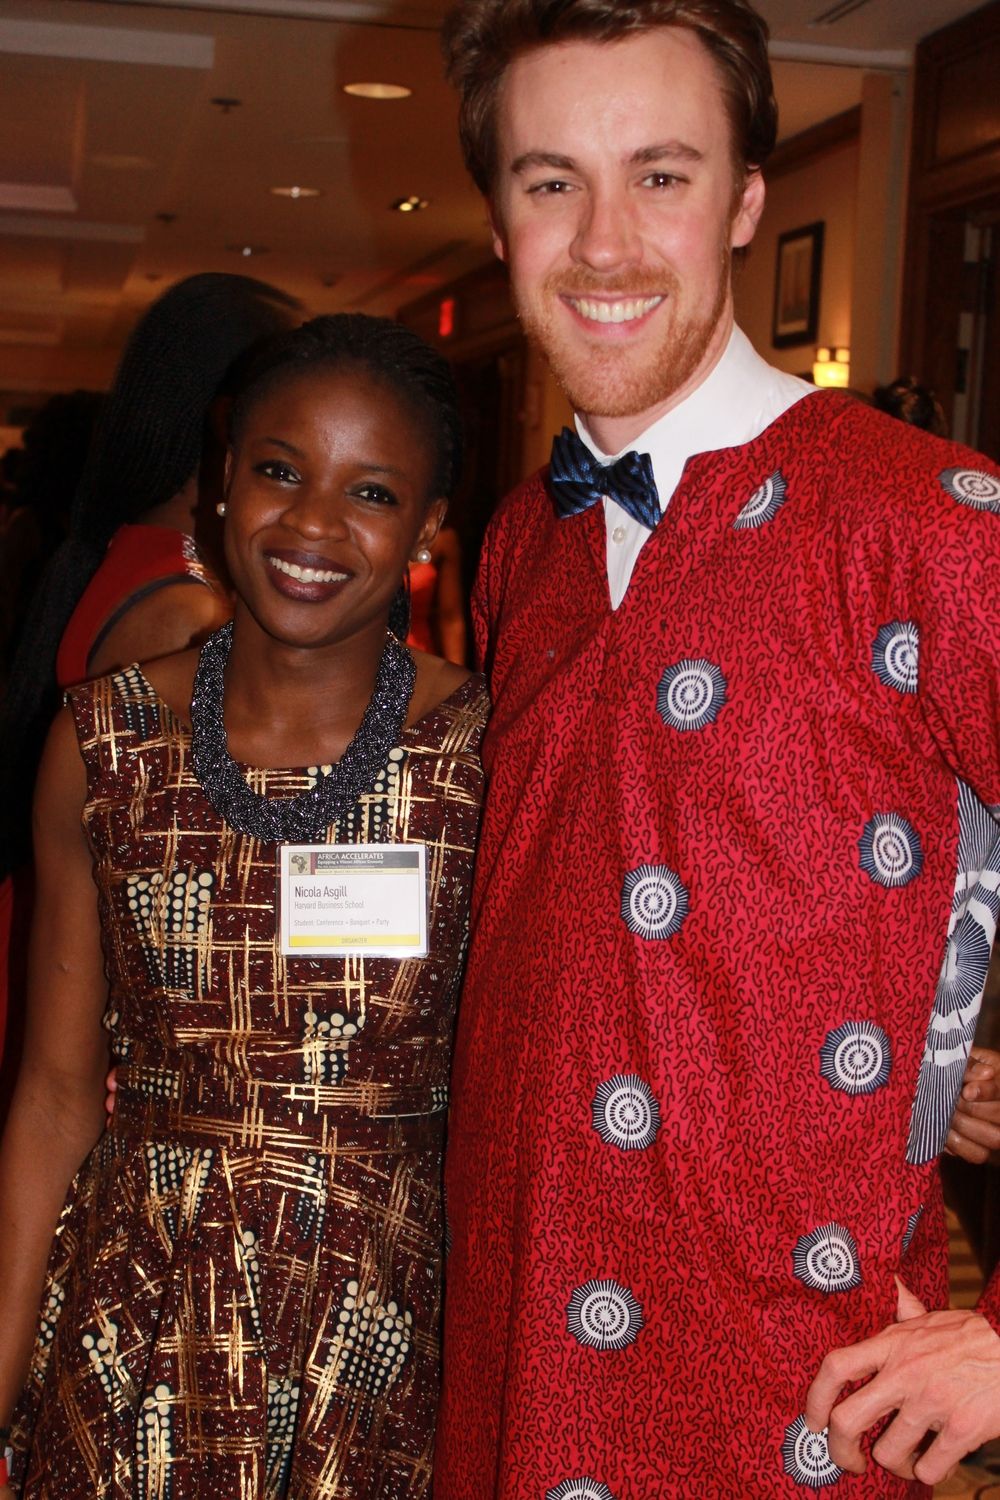 Same guy pictured with Nicola Asgill of  Evoque Magazine , who is also rocking a  Madam Wokie  design. Sierra Leone was beautifully represented at HBSABC.